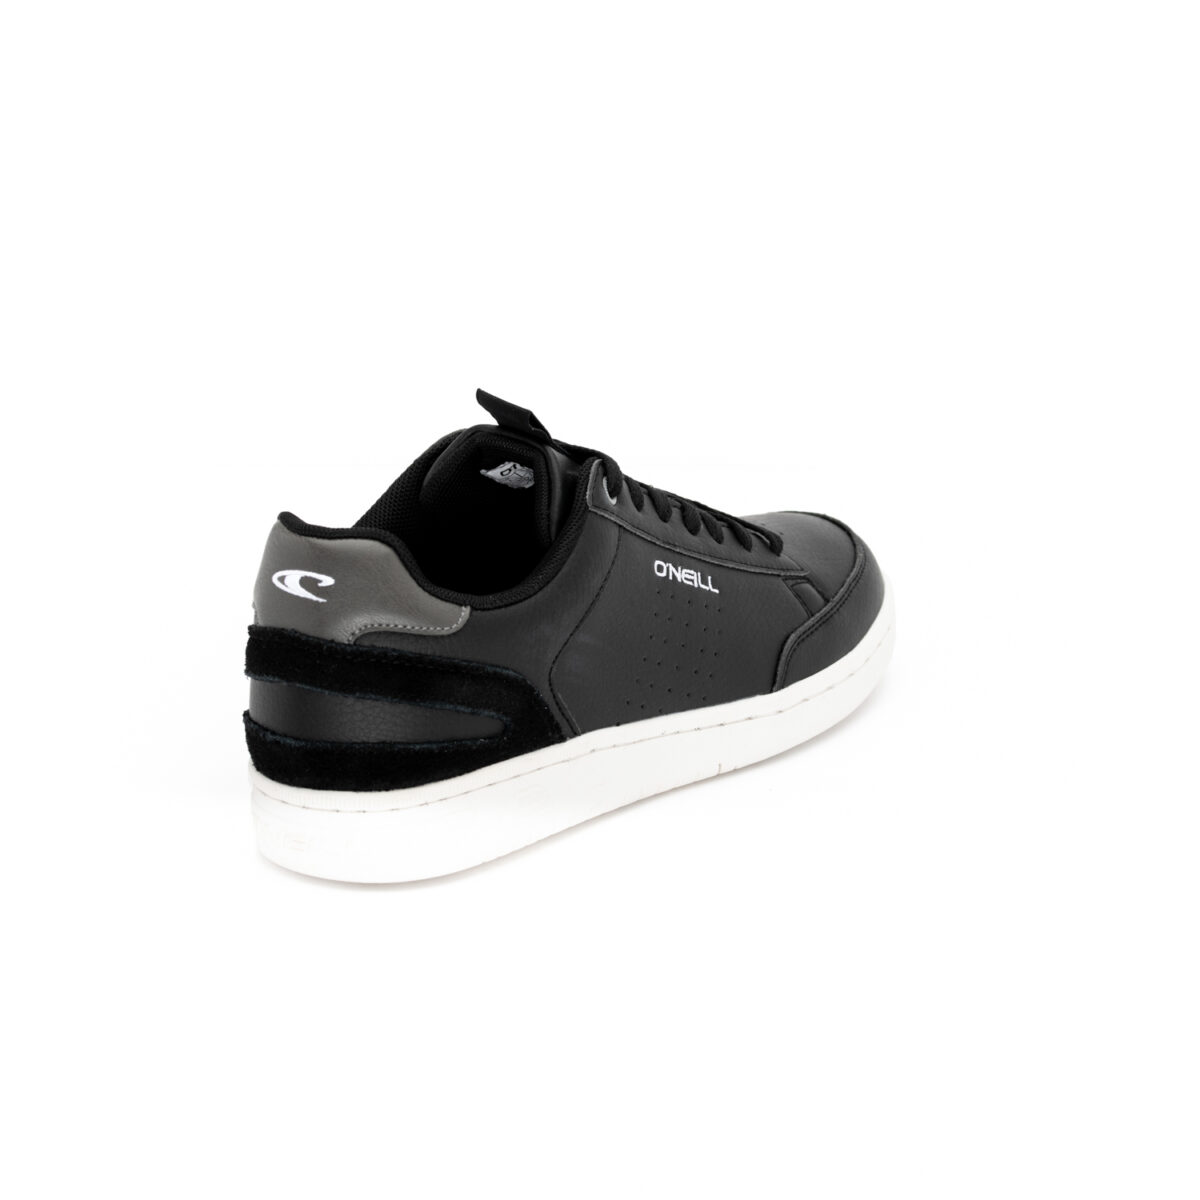 oneill black THE WEDGE 03